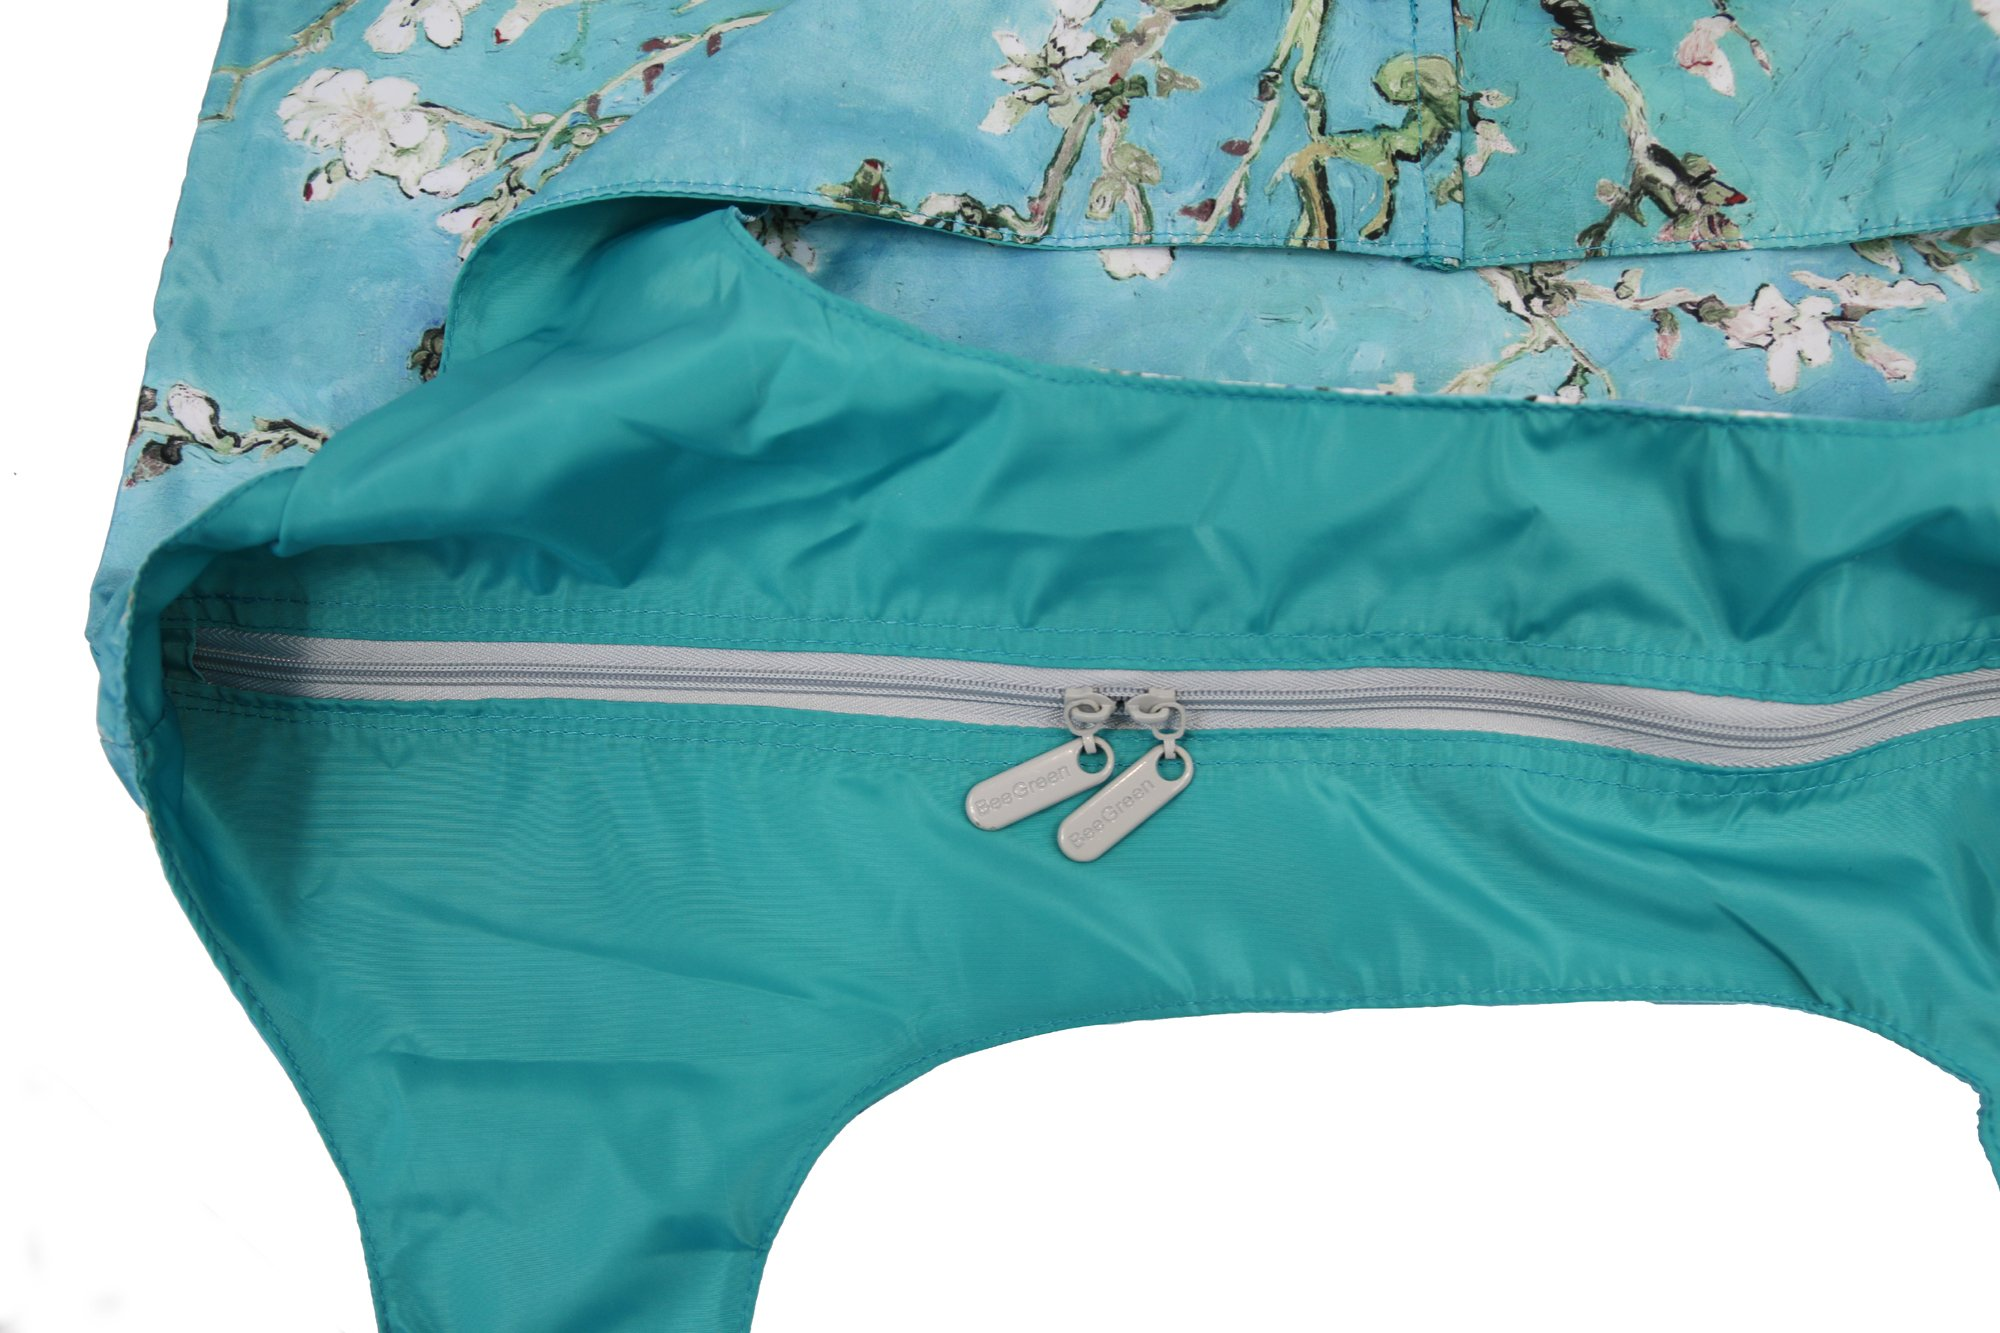 Reusable Grocery Bags with Zipper Closure,Foldable into Zippered Pocket … (Apricot tree) by BeeGreen (Image #2)